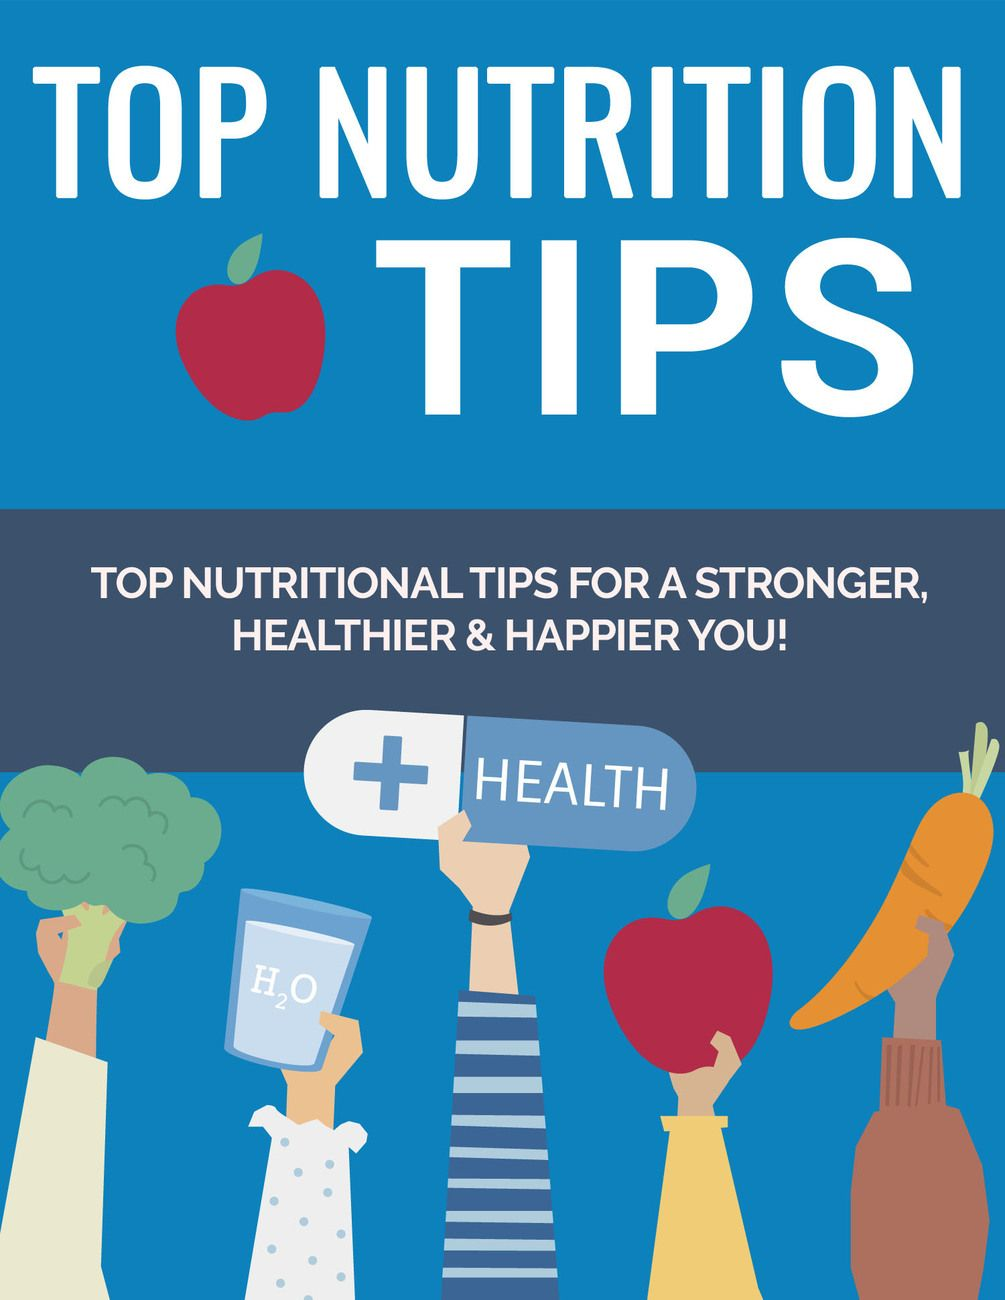 (10-Nutrition-Tips) Learn how to eat healthy. #Healthcare #HealthTips #HealthNutritionTips #SkinHeal...